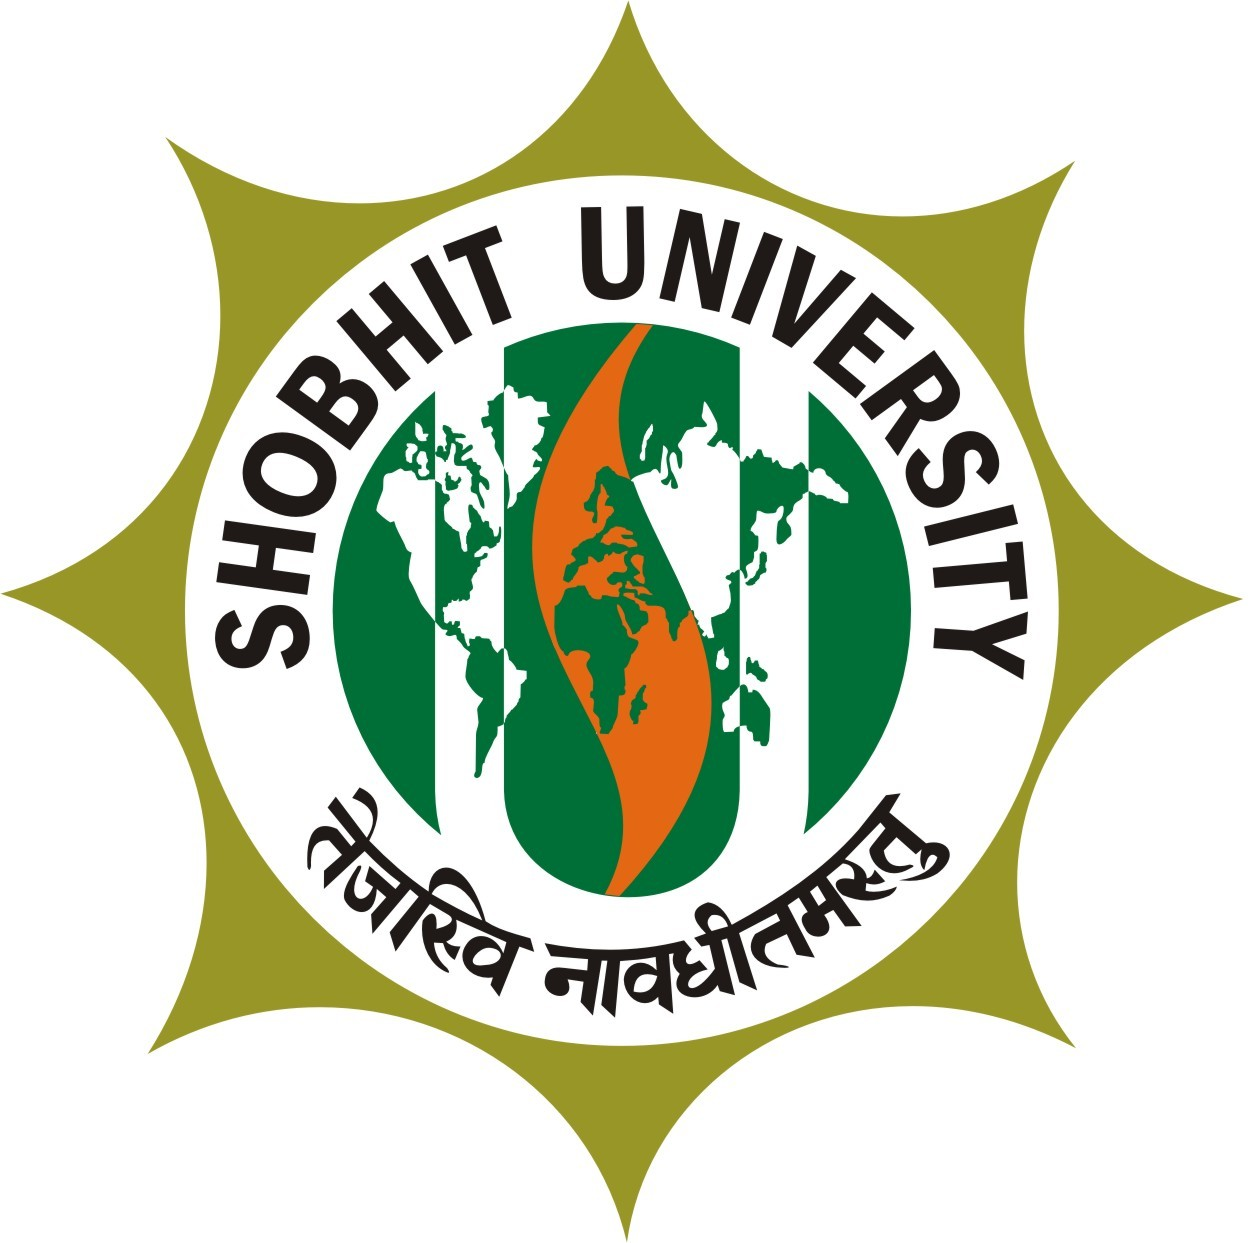 SHOBHIT UNIVERSITY, GANGOH